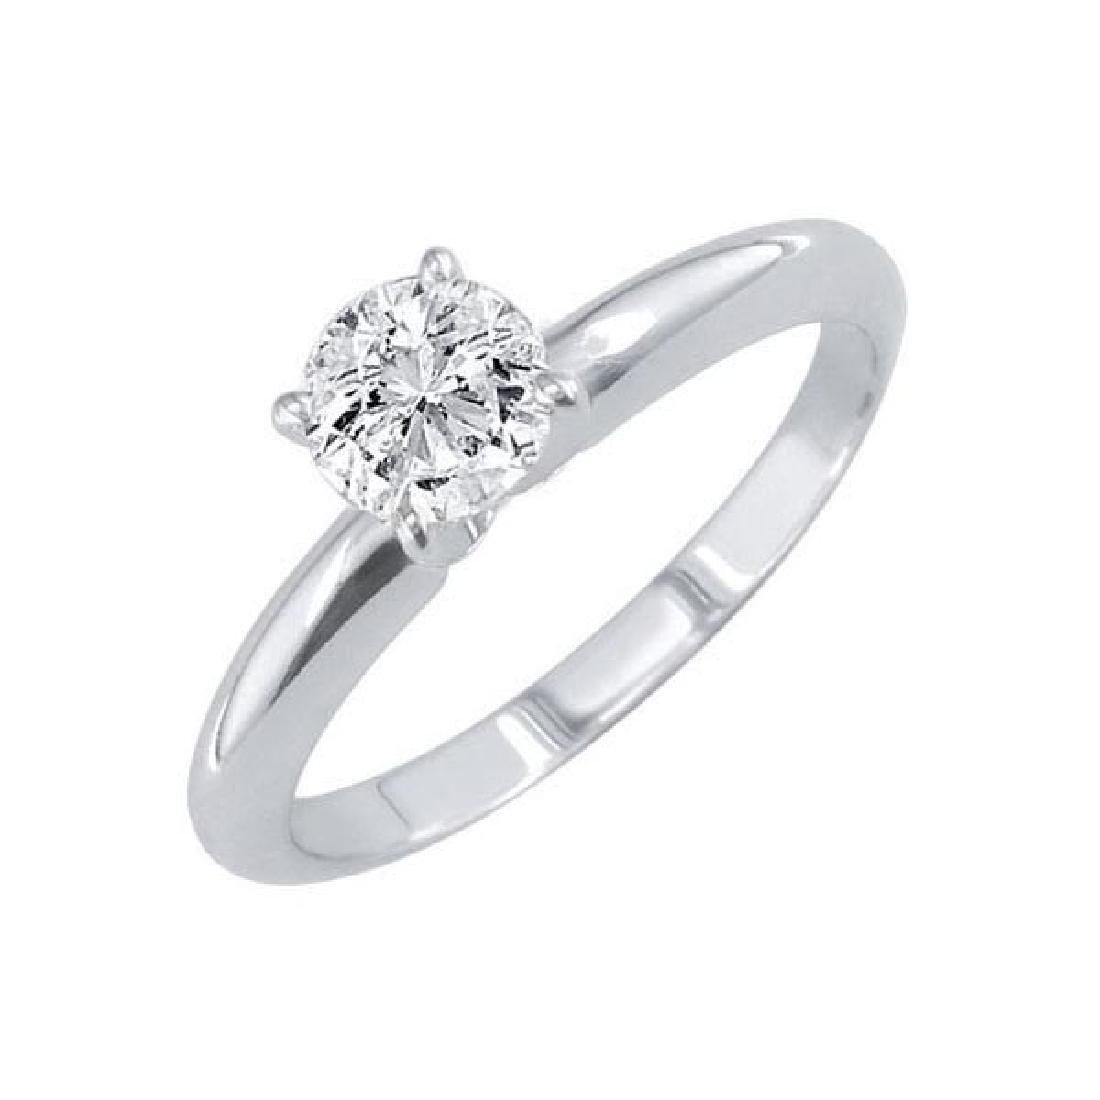 Certified 0.91 CTW Round Diamond Solitaire 14k Ring H/S